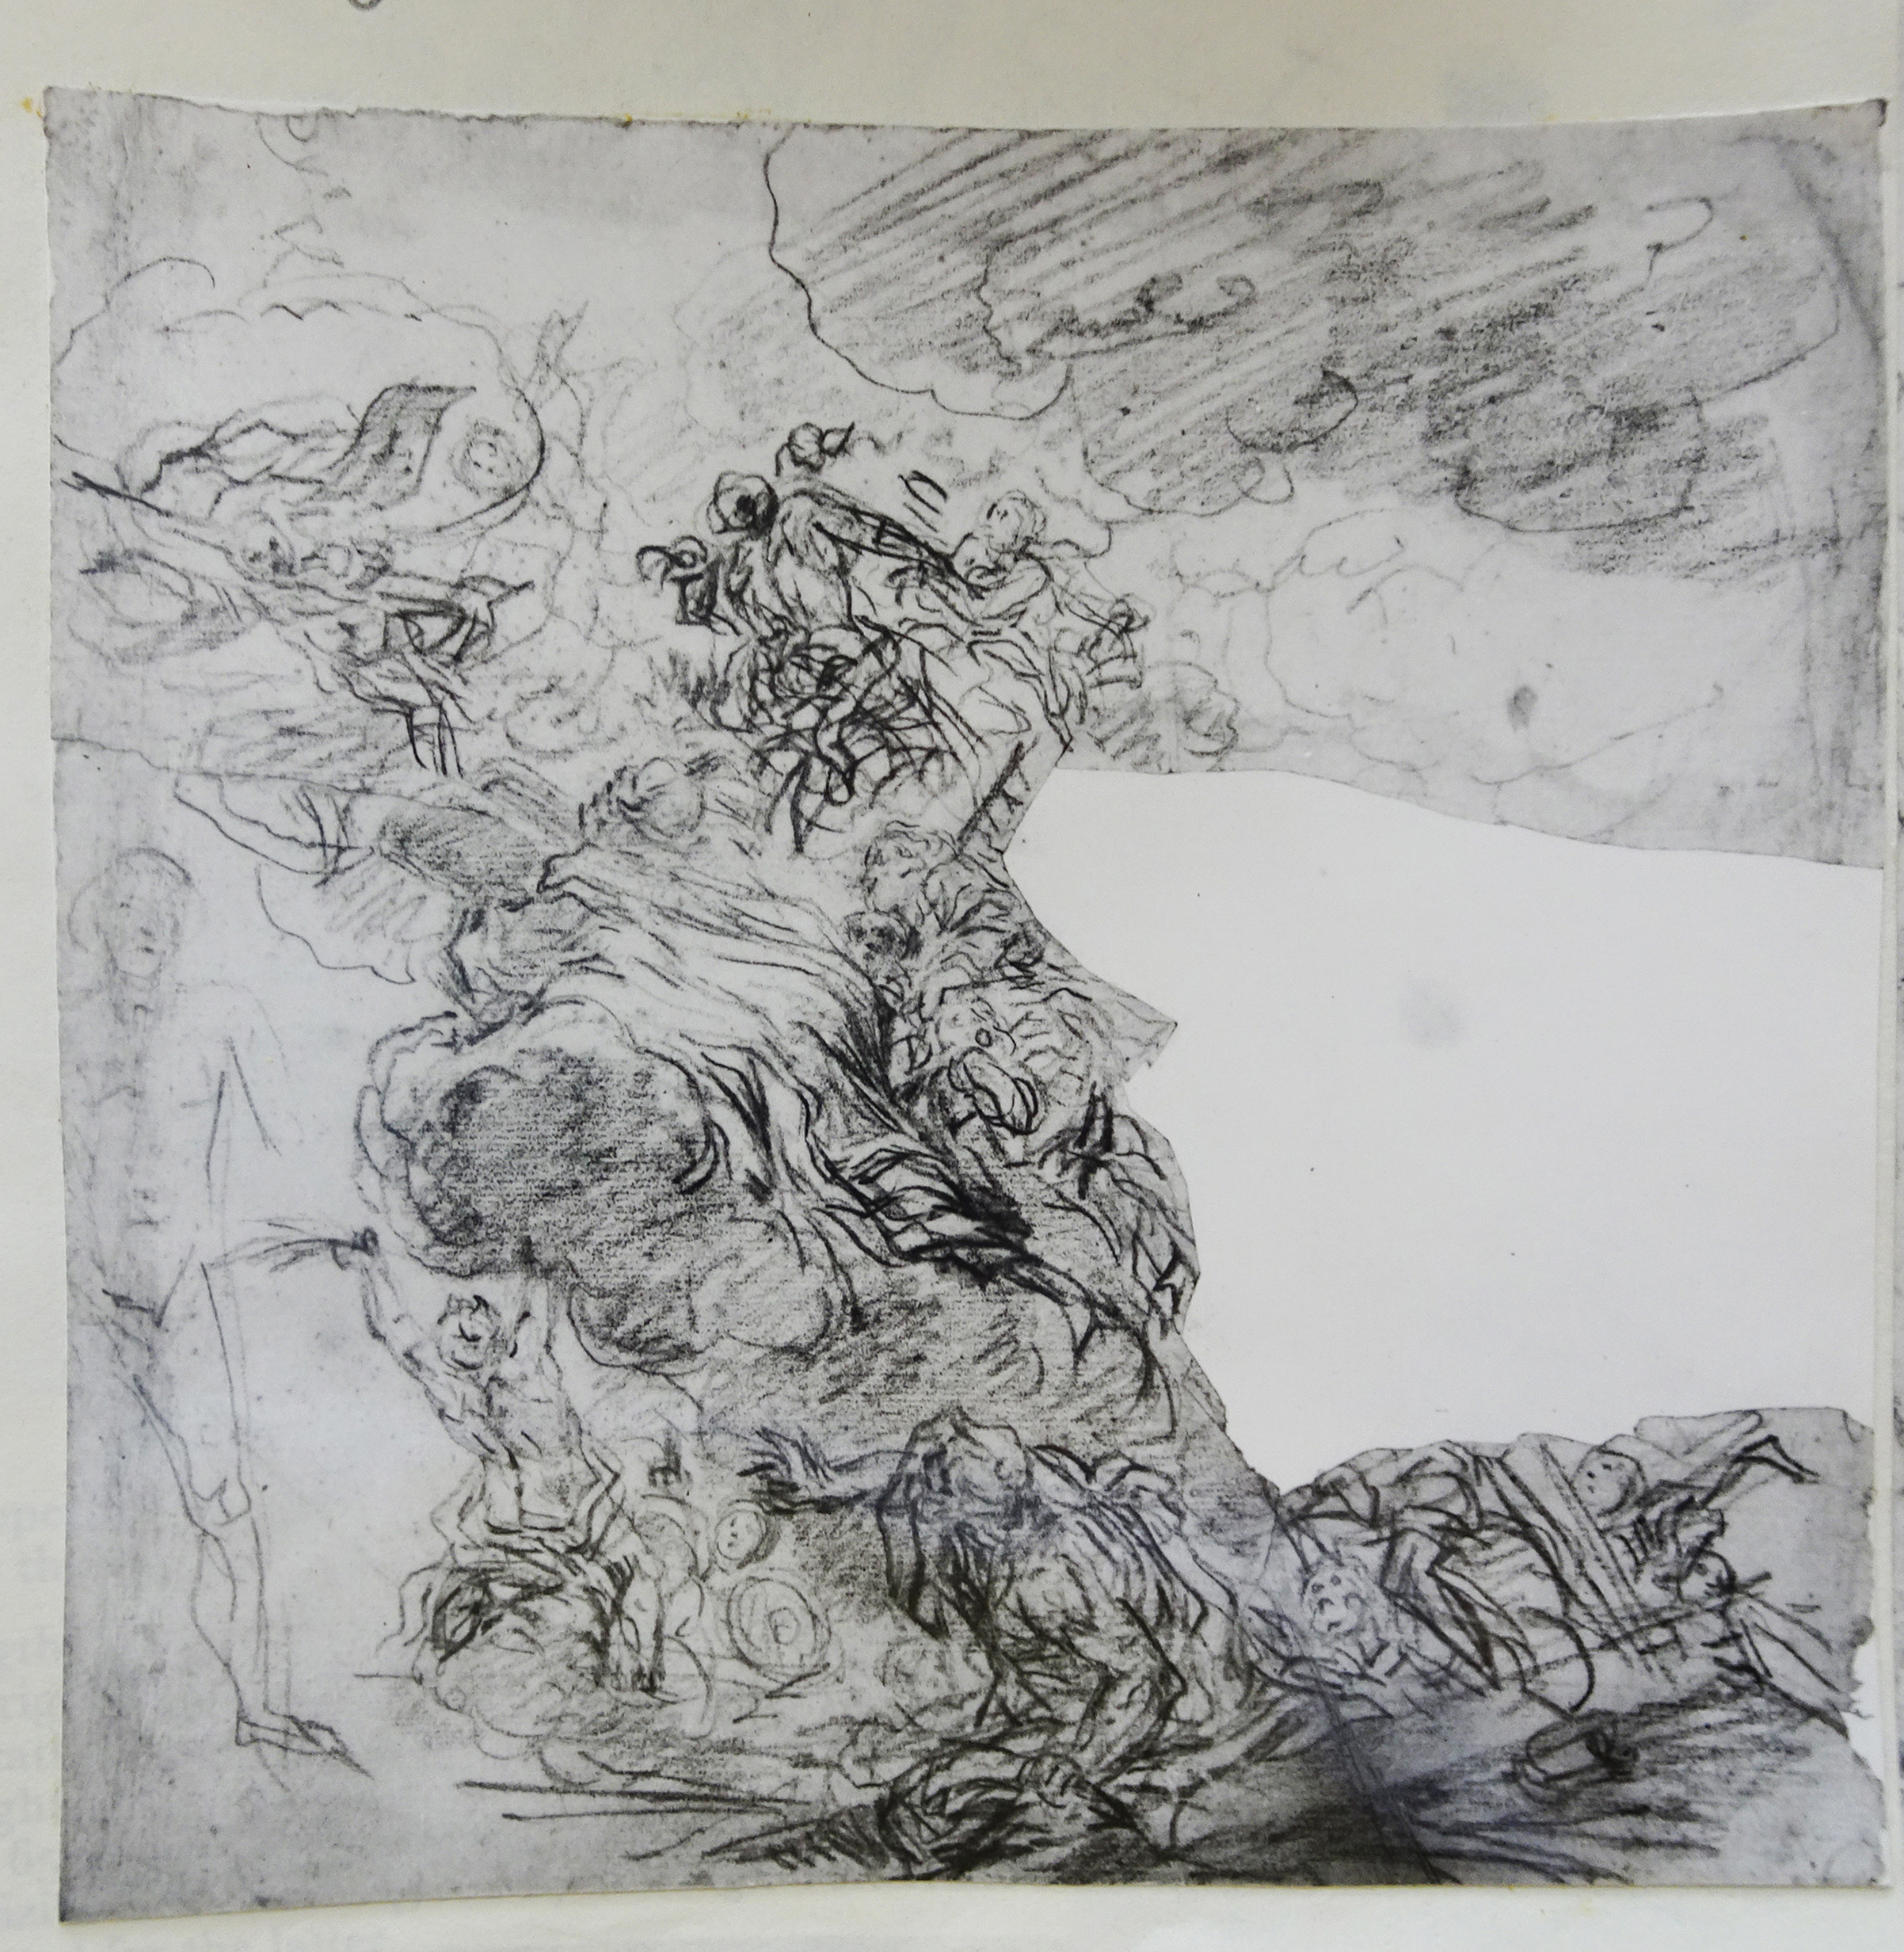 12D Volterrano sheet Figures on clouds black chalk 27x27.5 Sotheby s 1980 Lot 48